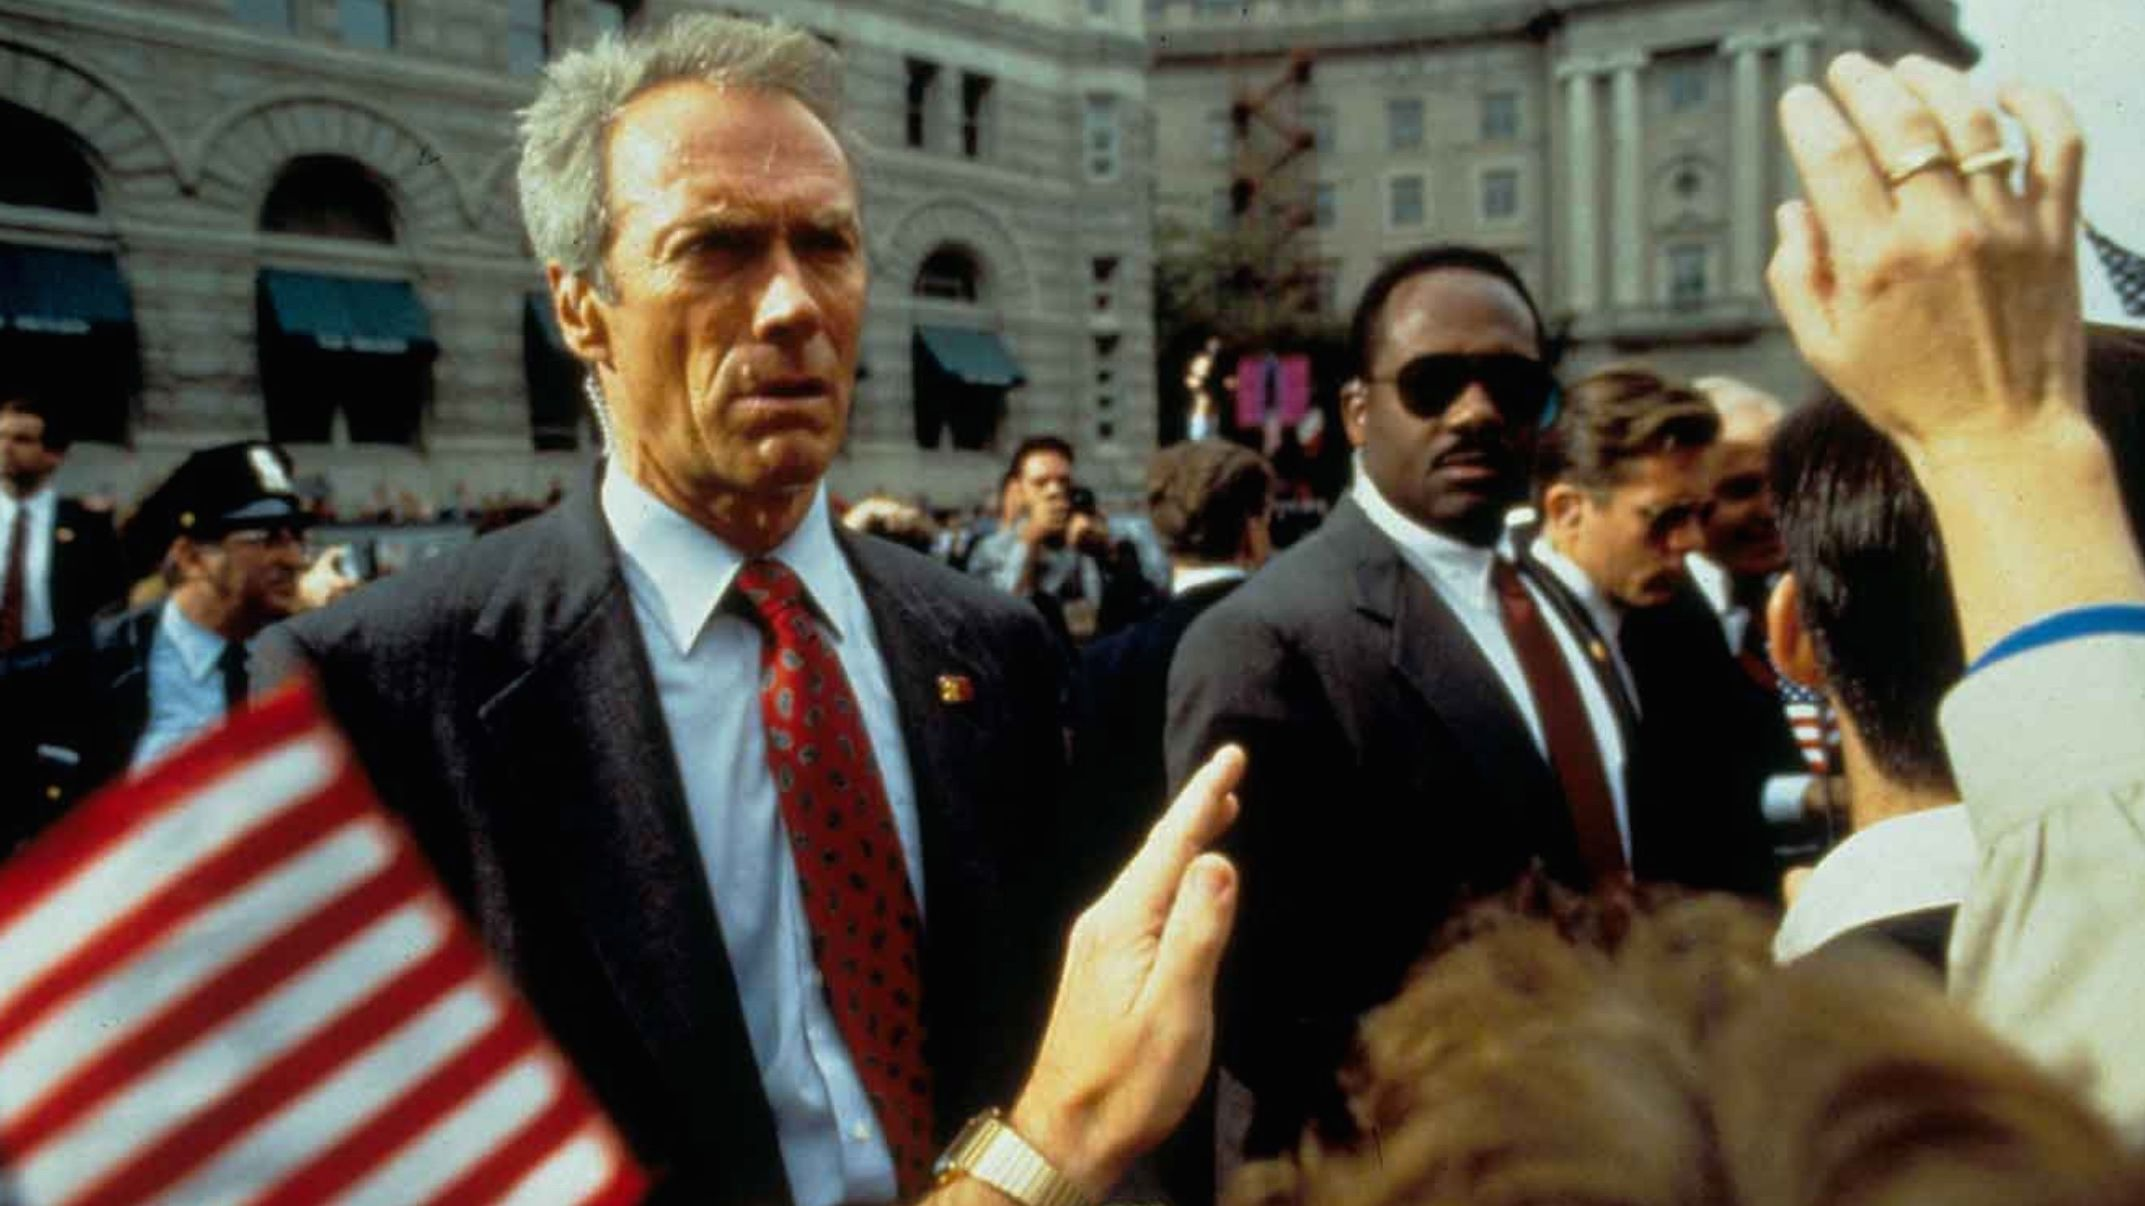 g34 20 Things You Didn't Know About Clint Eastwood